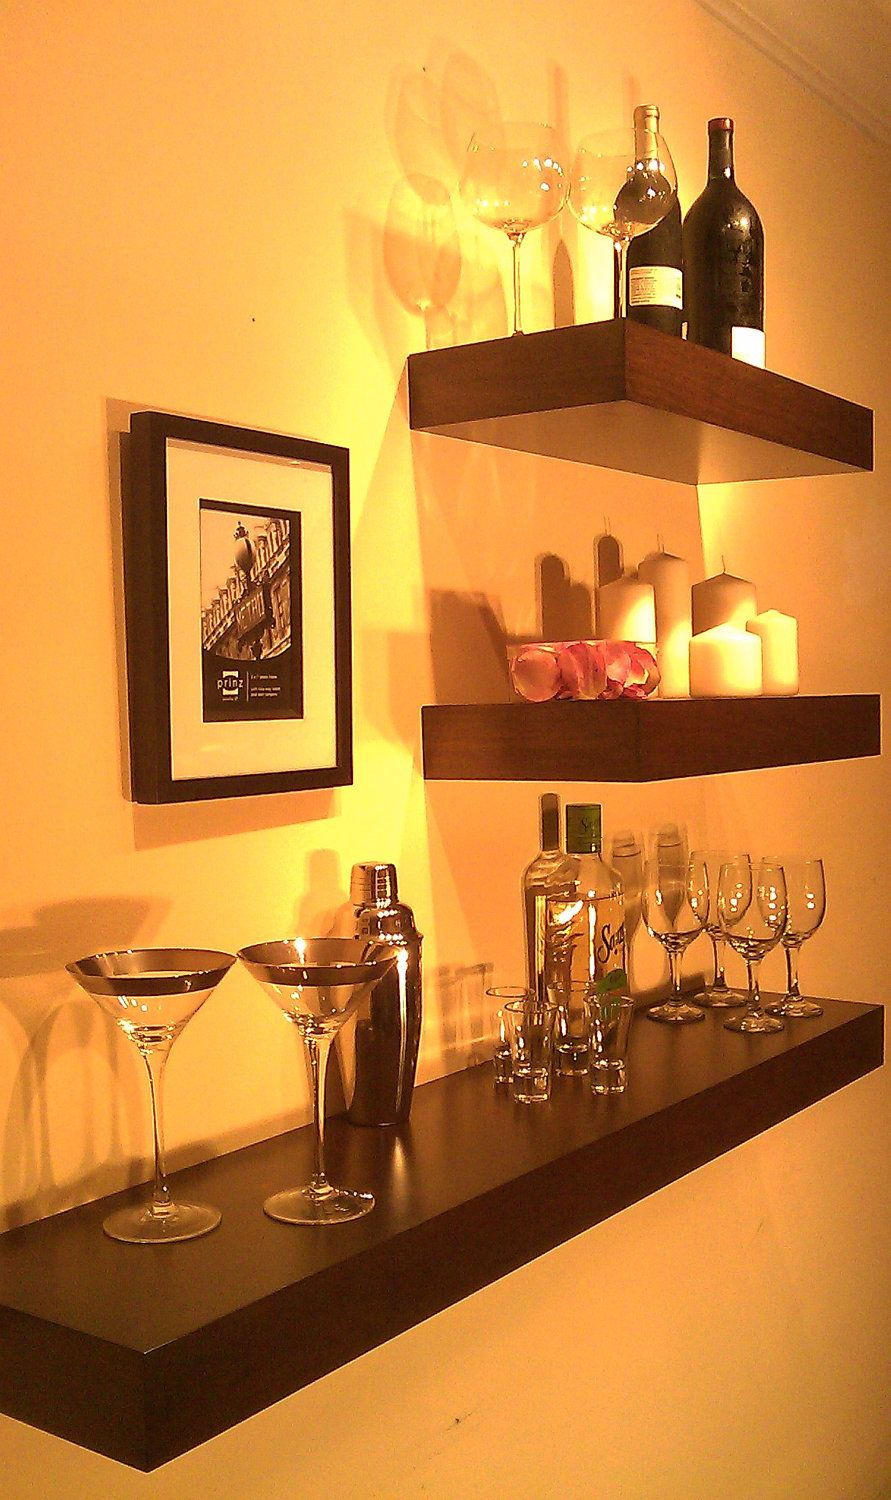 awesome idea for bar saw shelves like these bath floating glass beyond also clears space cabinets where all the glasses are now towel rod with shelf average closet height ikea